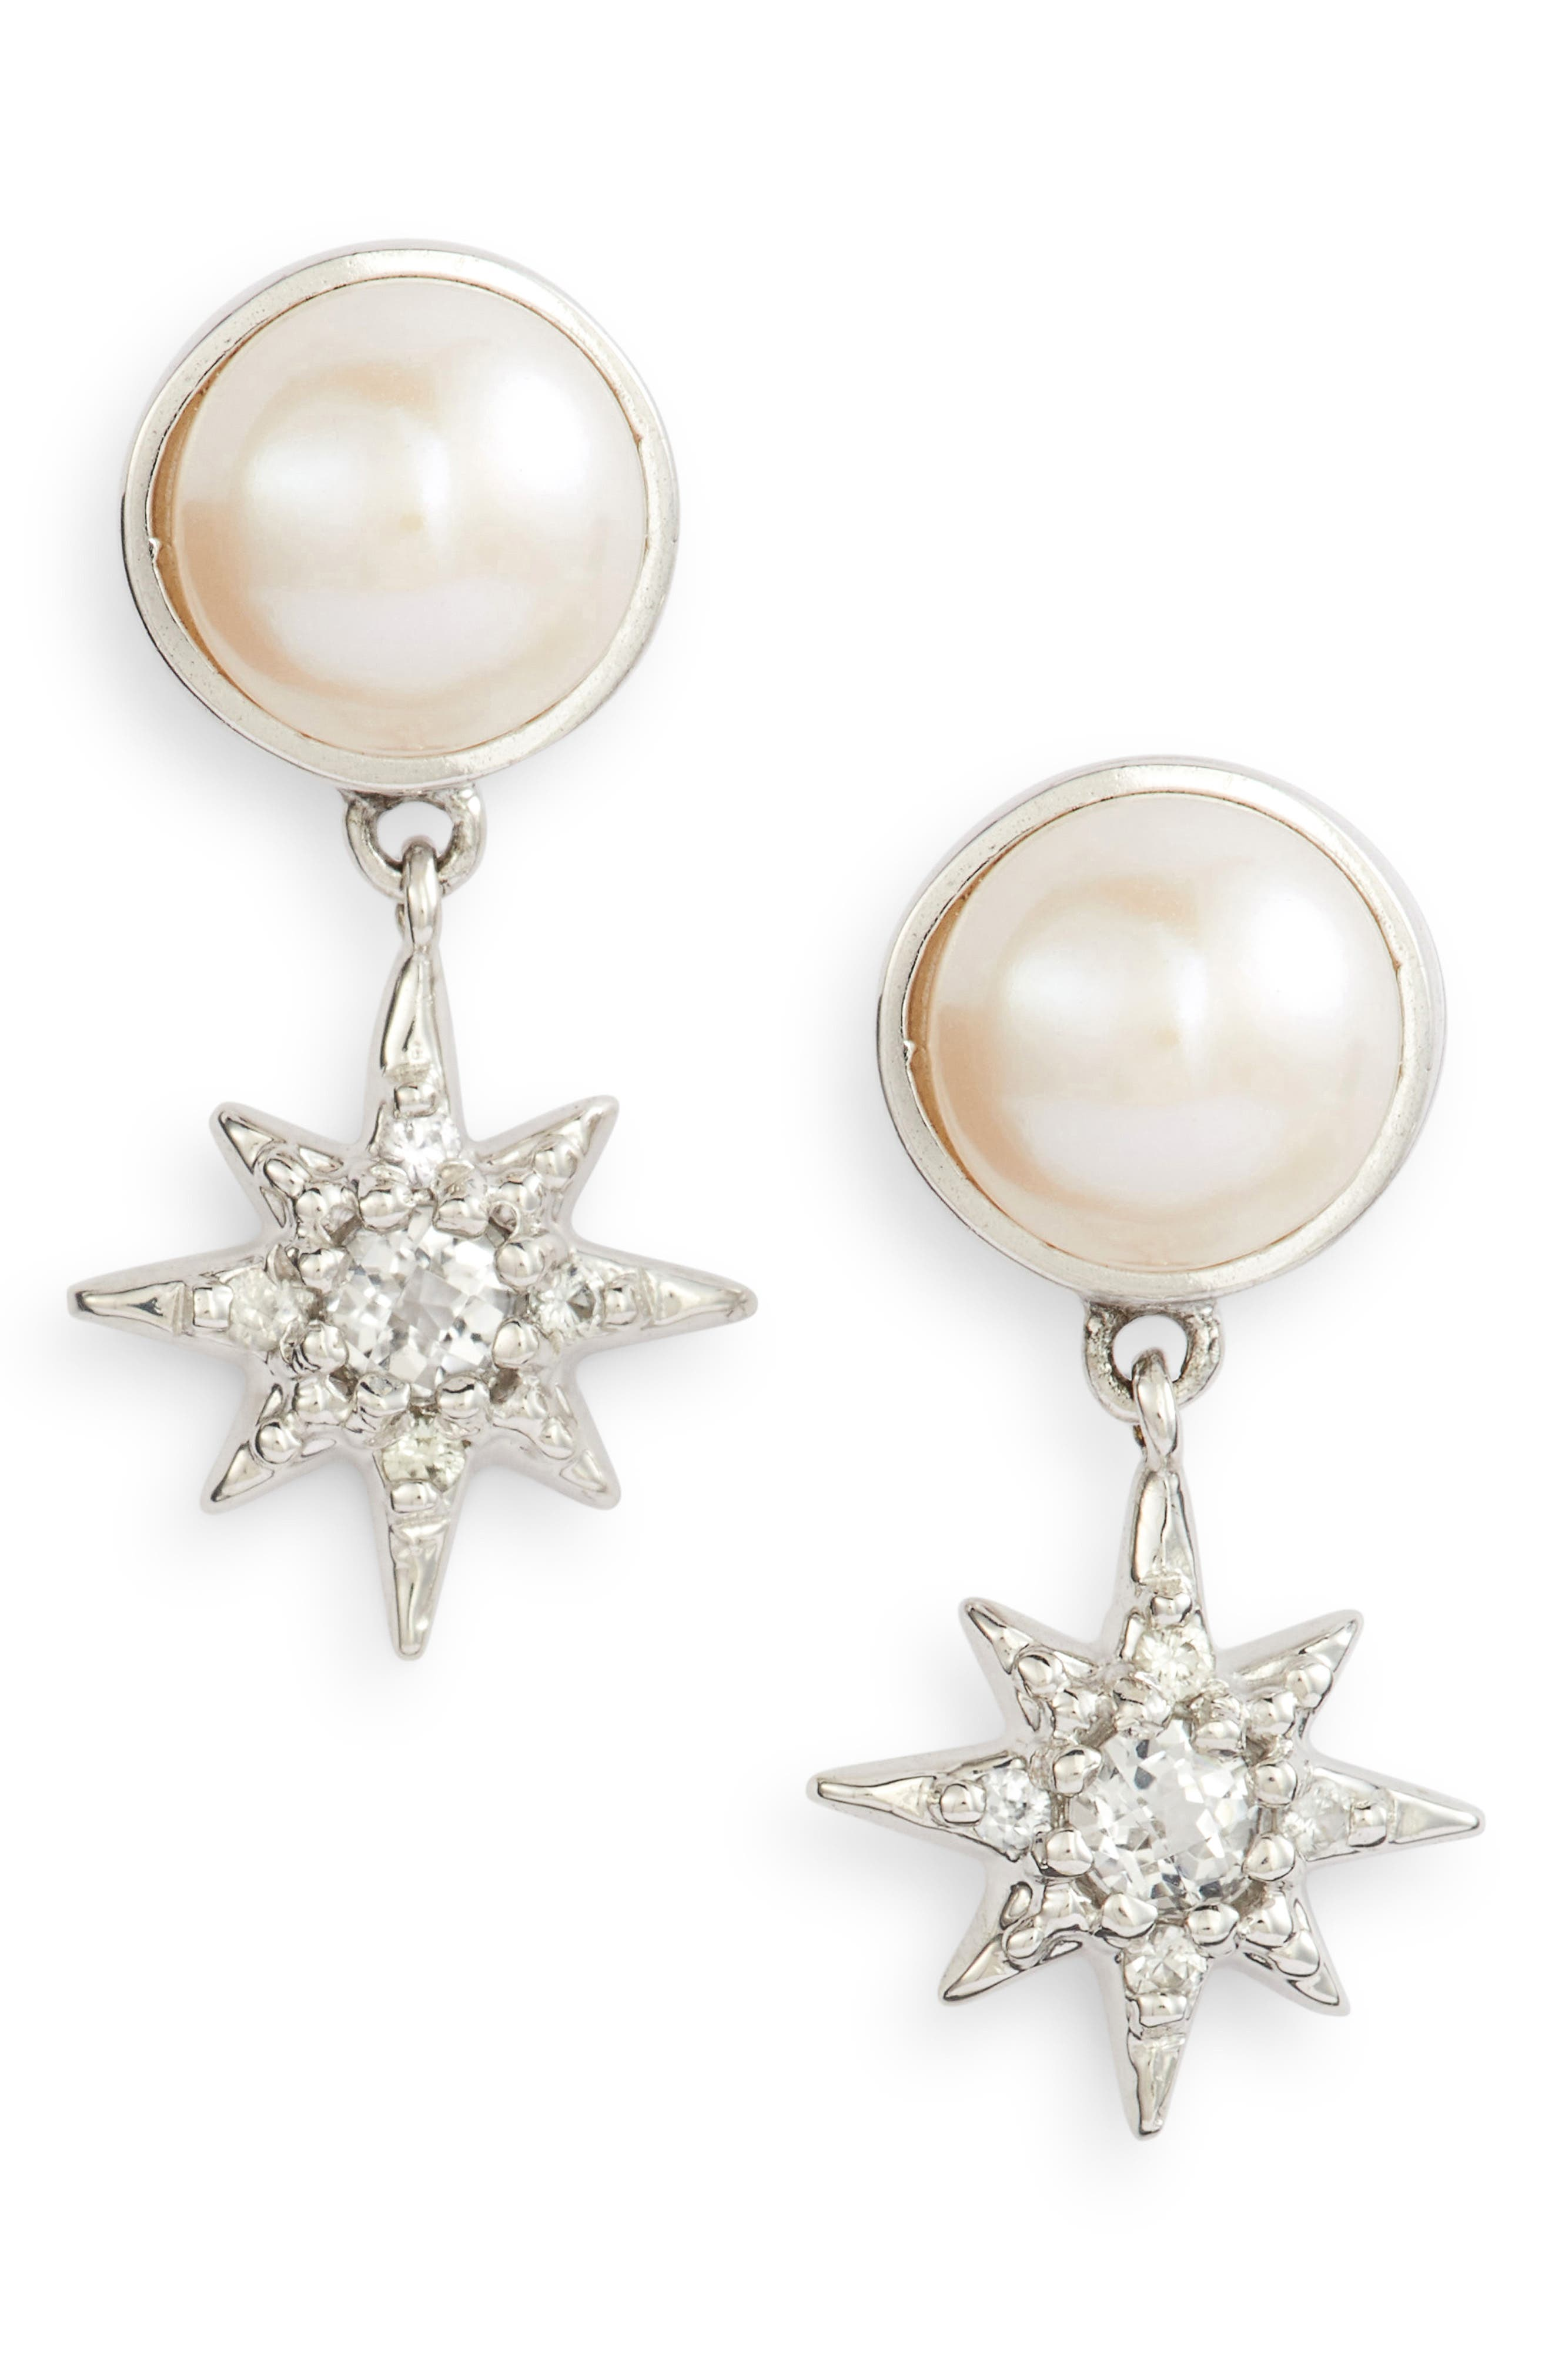 ANZIE Micro Aztec Starburst Mabe Pearl & Topaz Drop Earrings in White Topaz